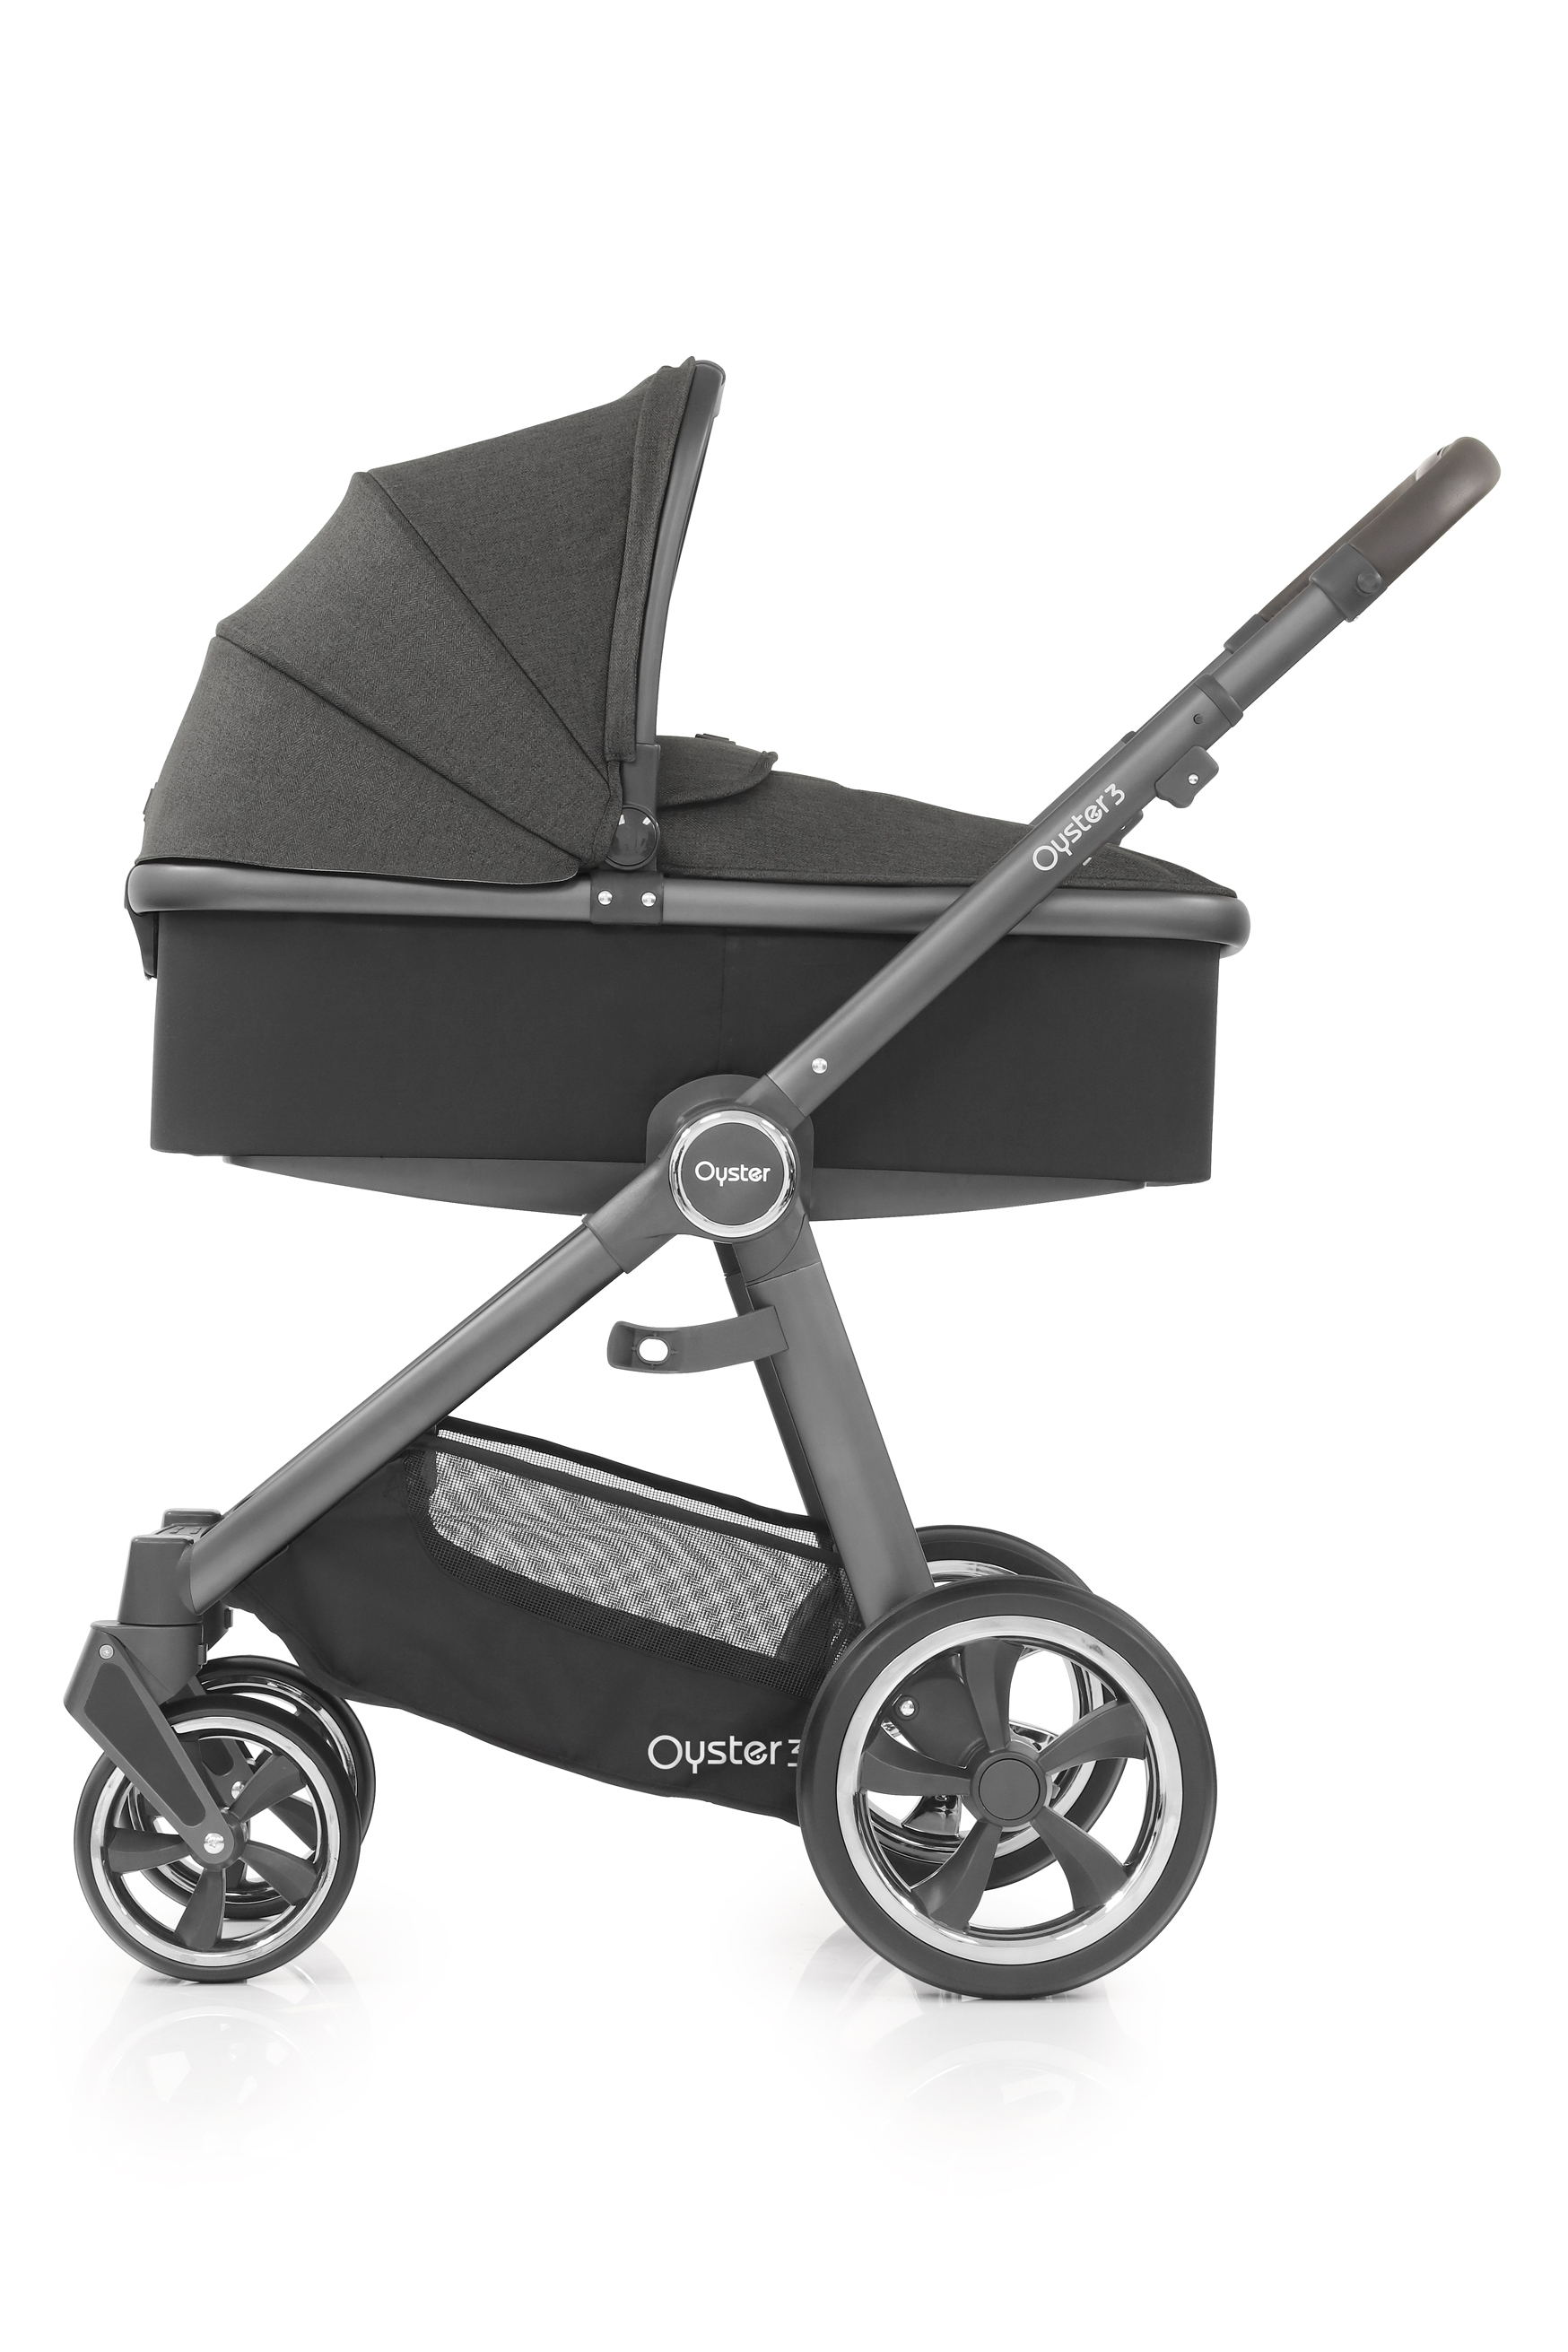 Oyster3 in Pepper carrycot